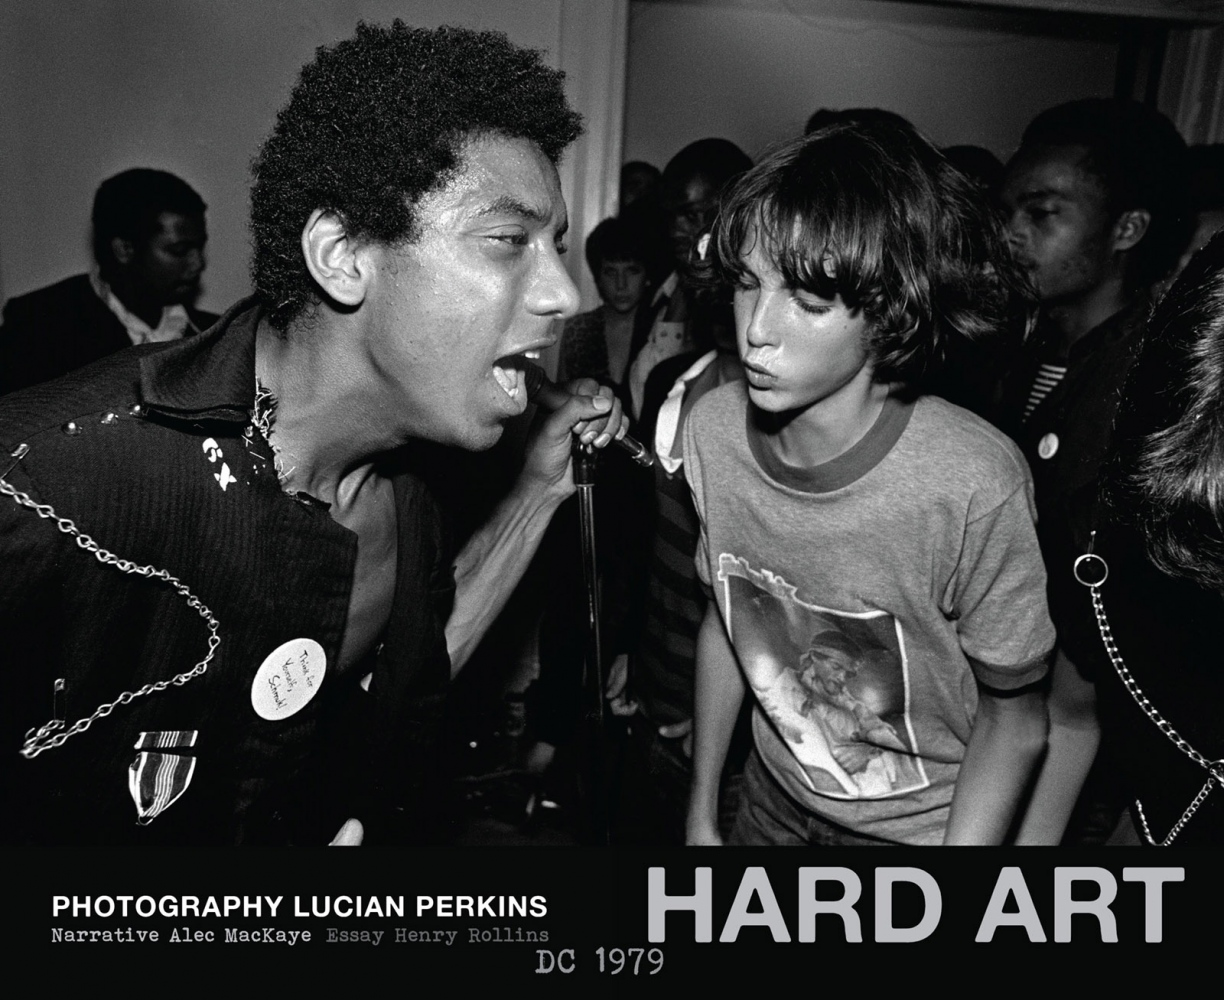 HARD ART DC 1979 published by Akashic Books explores the pivotal beginnings of DC punk scene in 1979 that would rock generations to come throughout the world.